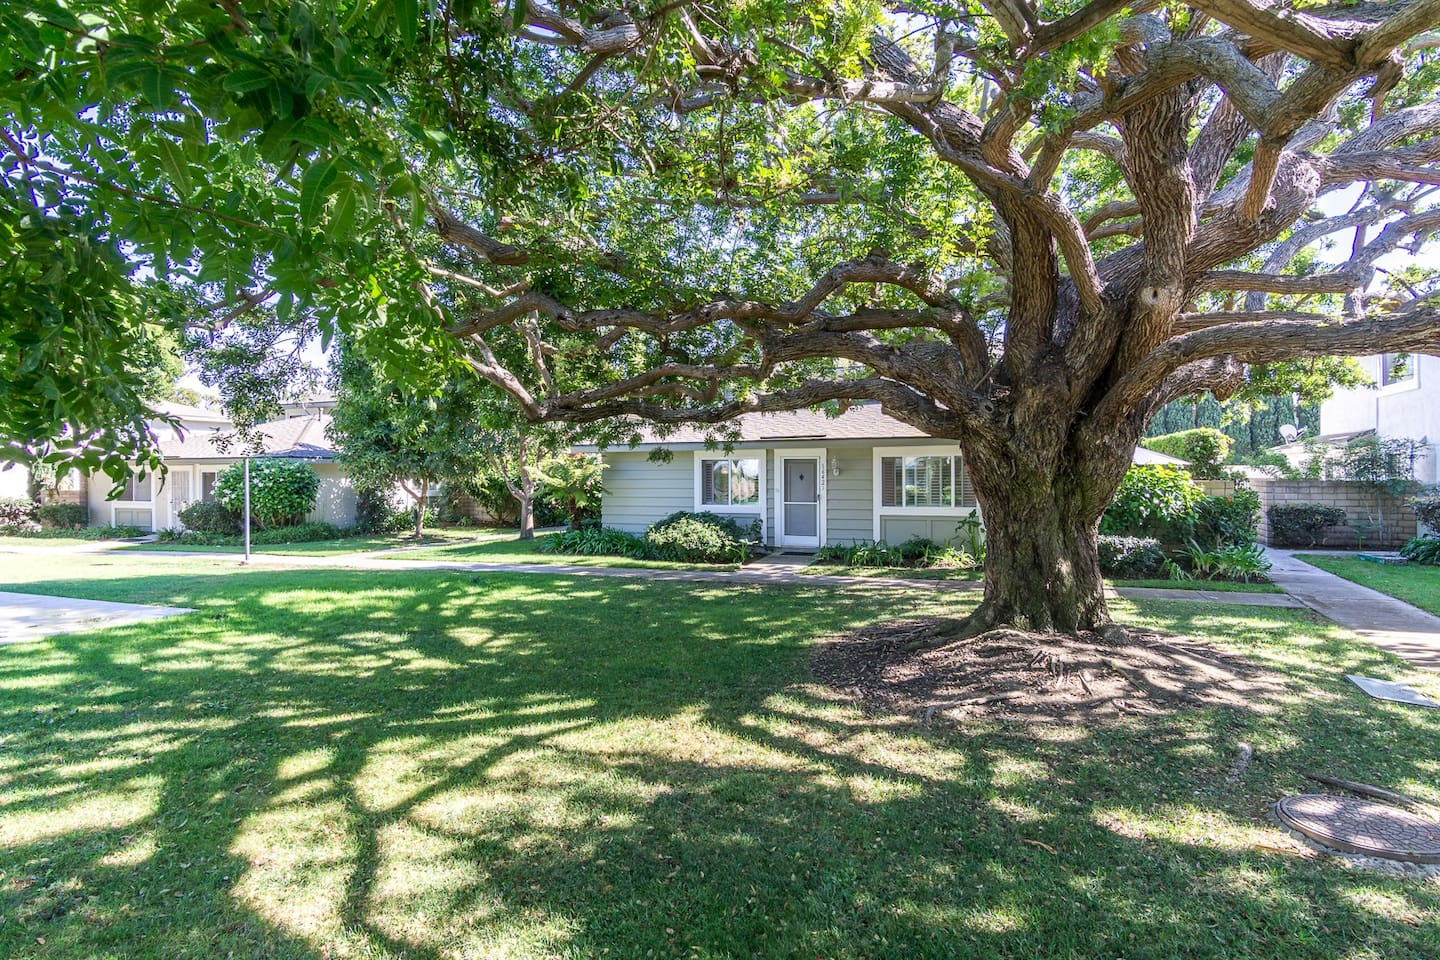 Private cottage single level. Quaint and quiet location with lush landscaping and grassy areas.  Short under 5 minute drive to white sandy beaches.